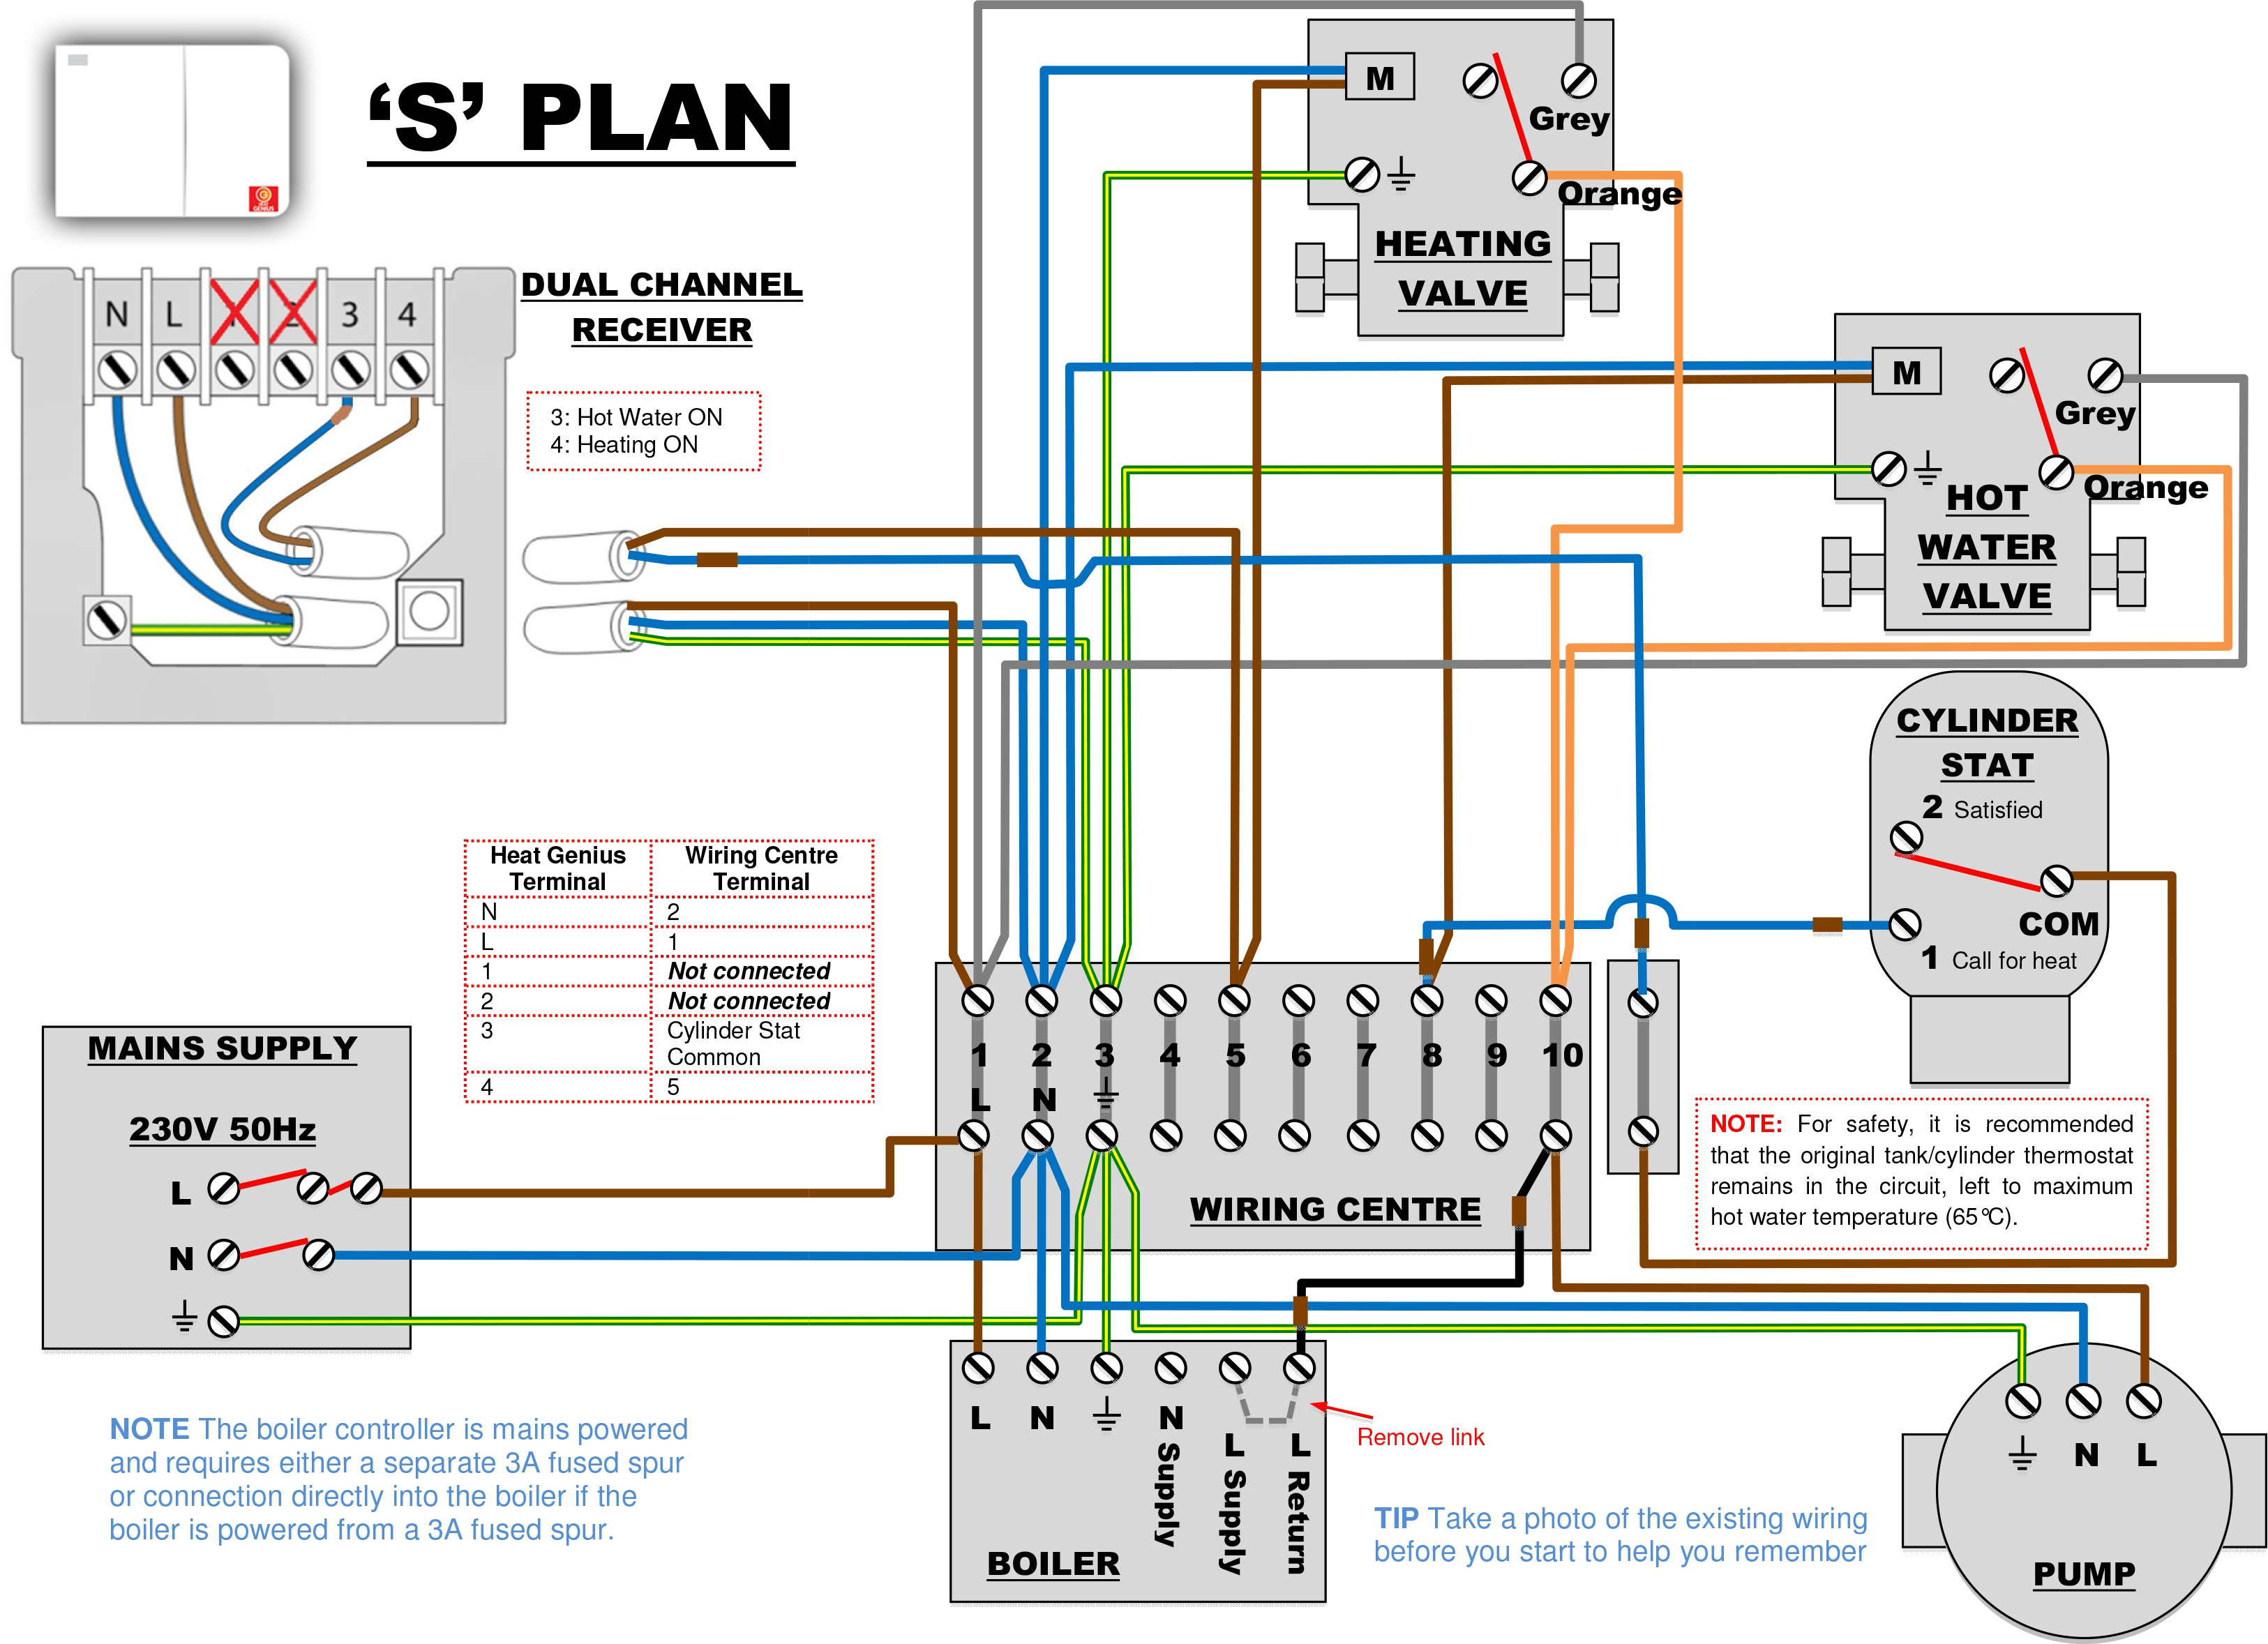 nest thermostat wiring diagram Download-Nest Wireless thermostat Wiring Diagram Valid Nest thermostat Wiring Diagram Exceptional Yirenlu Me Unbelievable 9-l